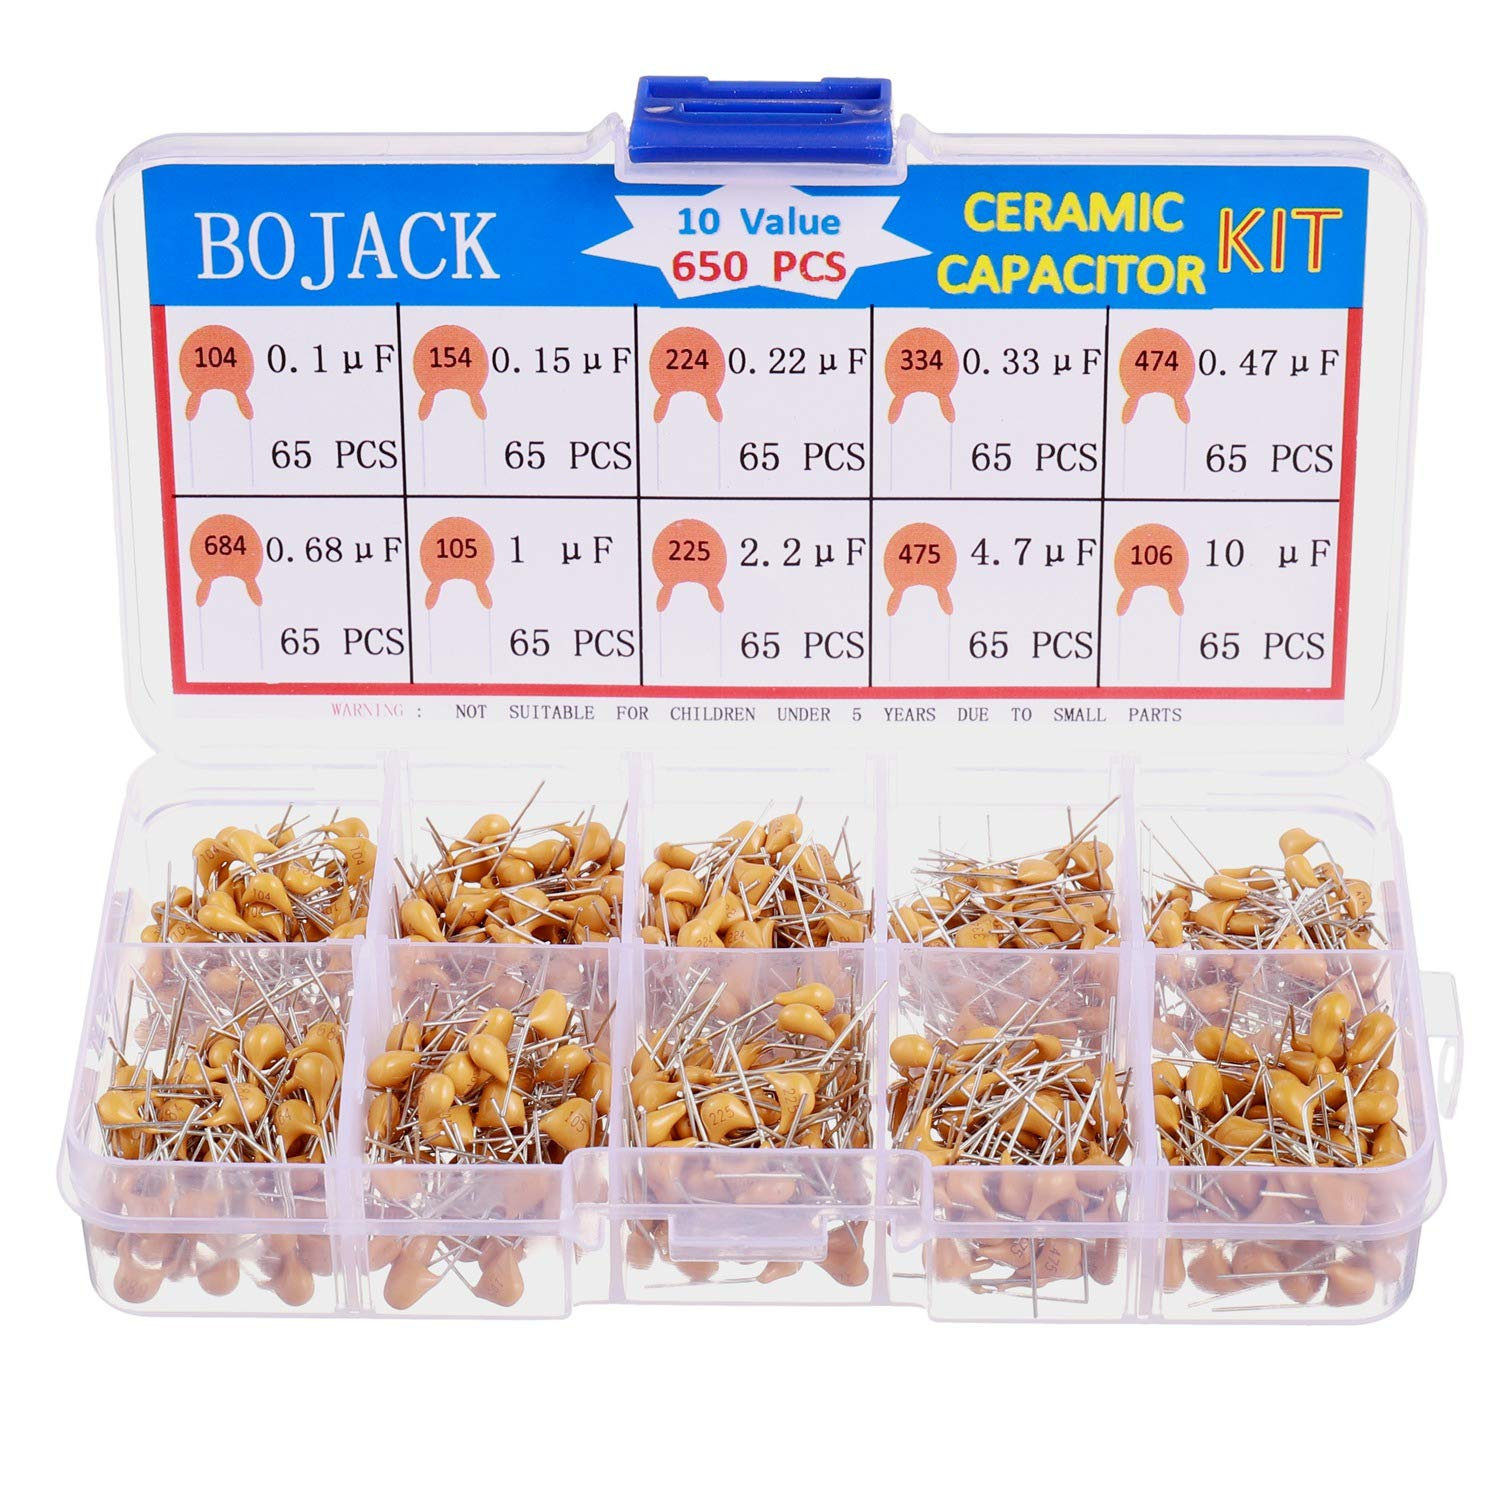 BOJACK 10 Type 650Pcs Ceramic Capacitor Assortment Kit Capacitors From 0.1uf//100 nF to 10 uF in a Box